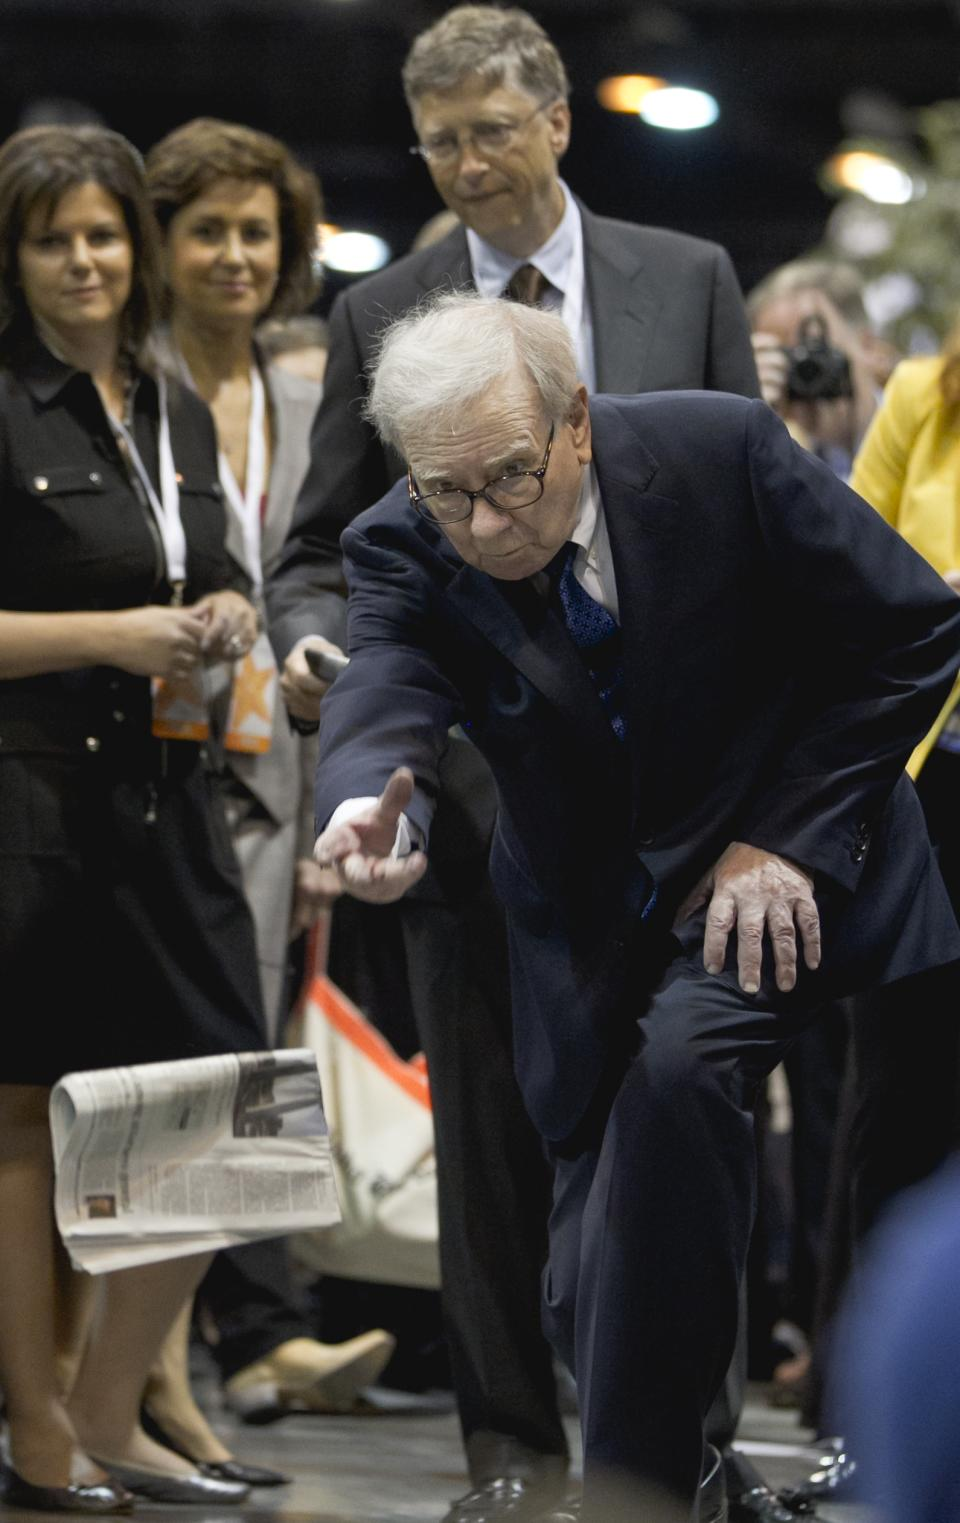 Warren Buffett, chairman and CEO of Berkshire Hathaway tosses a newspaper during a newspaper tossing competition in Omaha, Neb., Saturday, May 5, 2012. Bill Gates watches at rear. Berkshire Hathaway is holding it's annual shareholders meeting this weekend. (AP Photo/Nati Harnik)